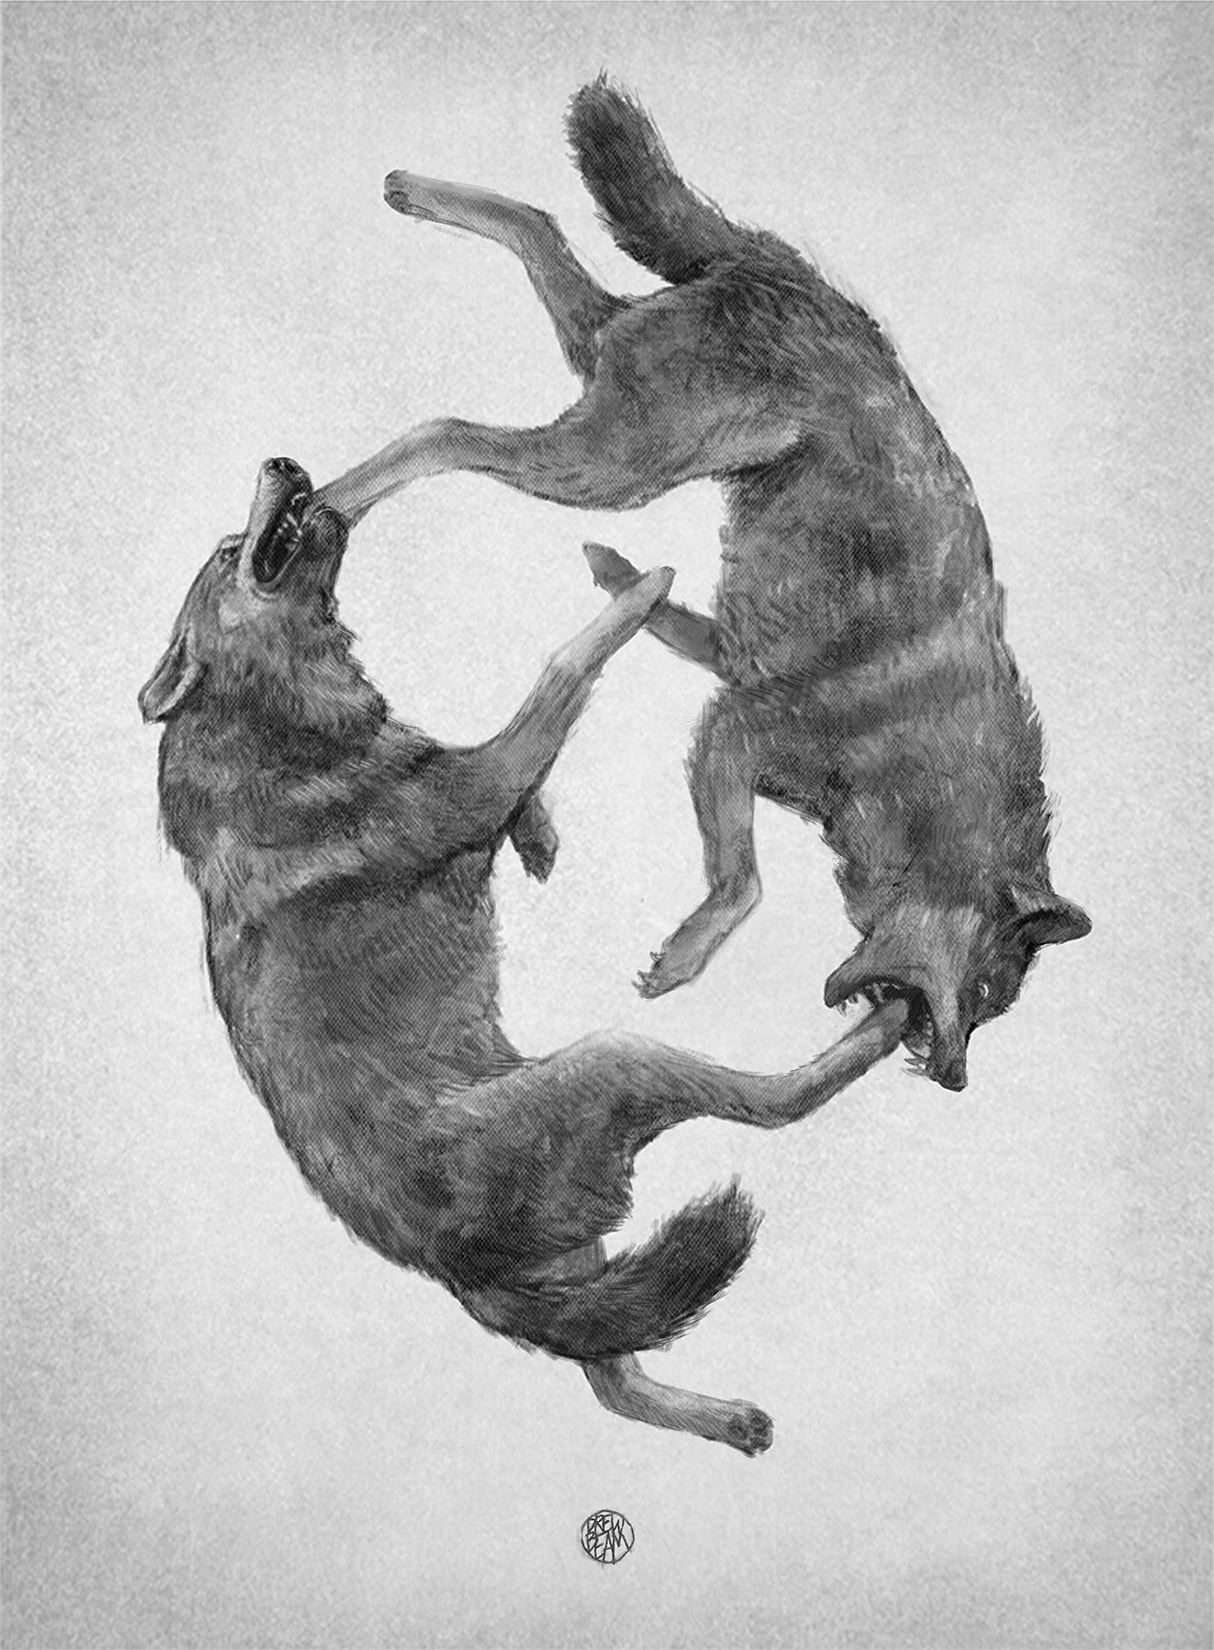 TWO WOLVES   BY DREW BEAM, PENCIL & PAPER